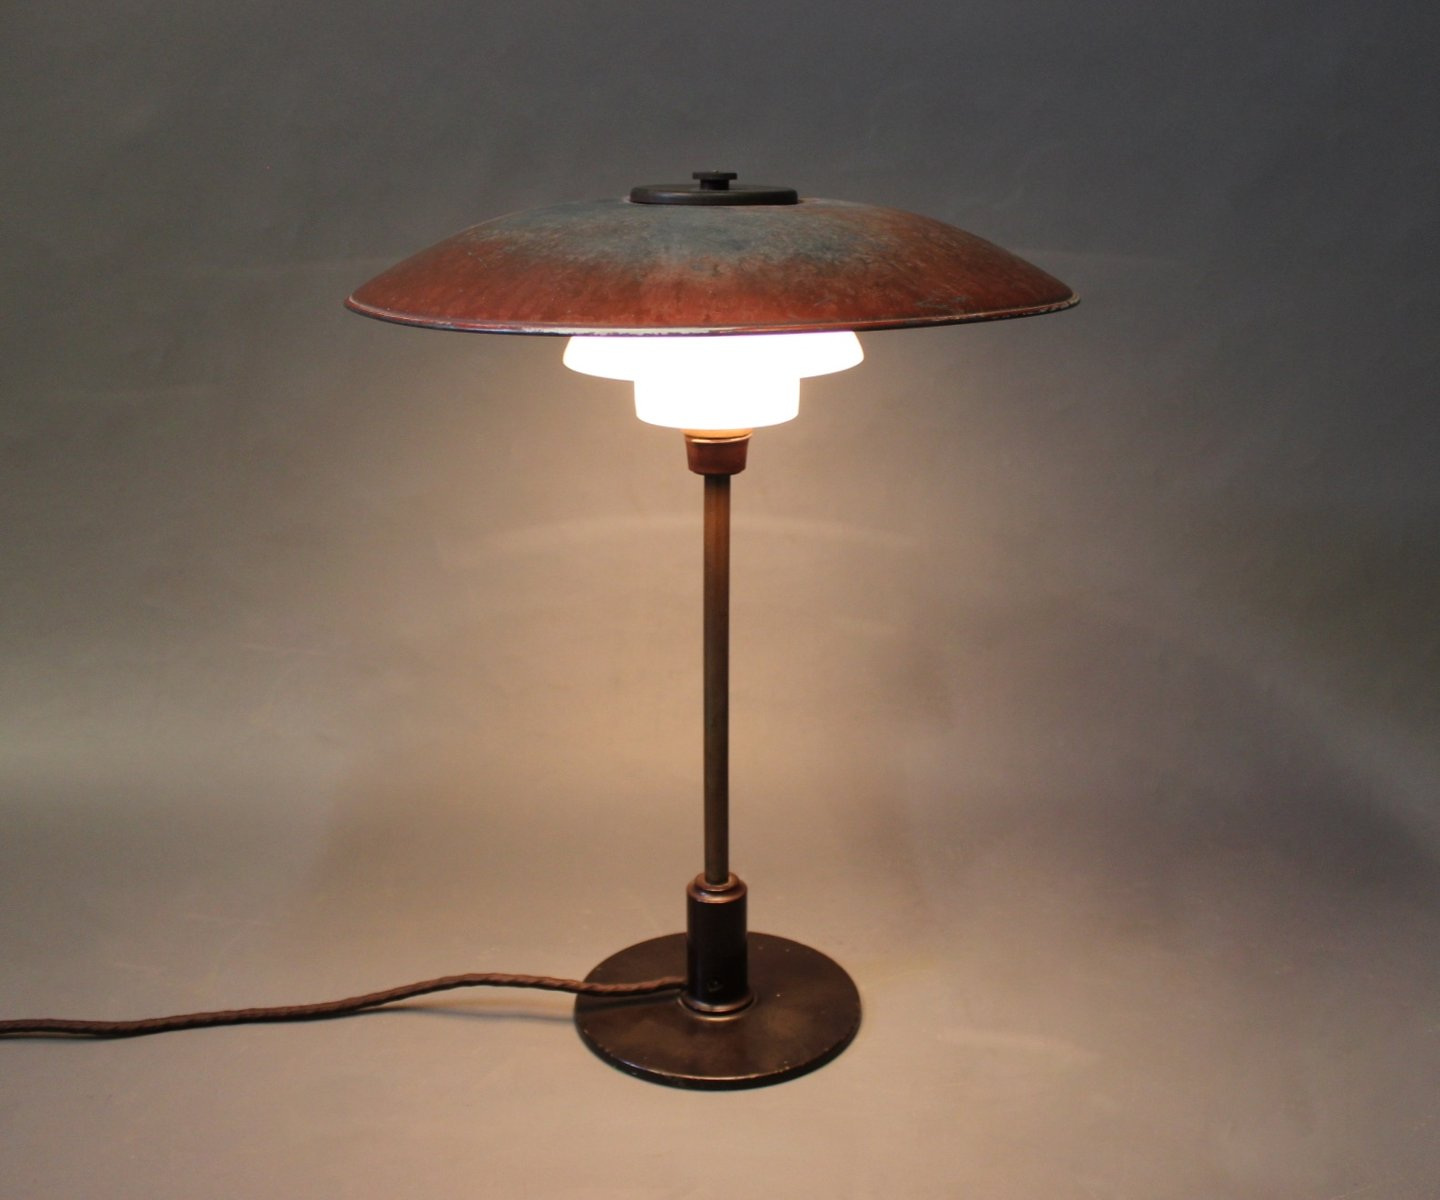 vintage danish ph 3 5 2 5 table lamp by poul henningsen for louis poulsen 1930s for sale at pamono. Black Bedroom Furniture Sets. Home Design Ideas